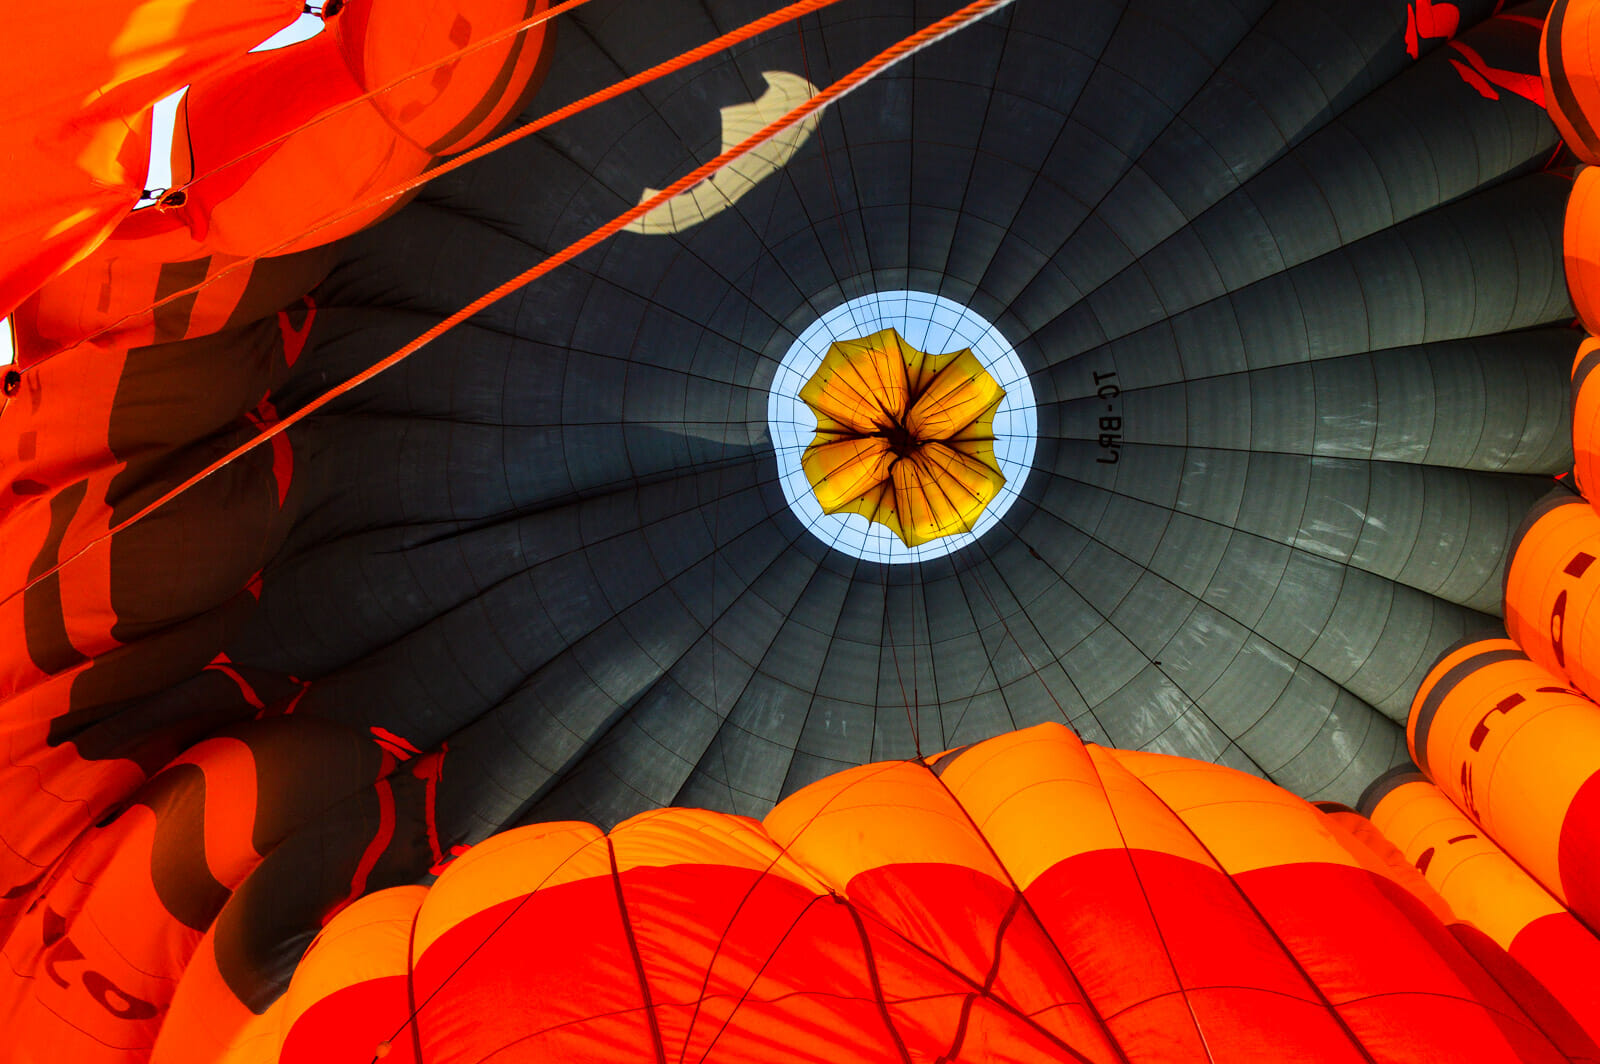 The Hot Air Balloons of Cappadocia 4